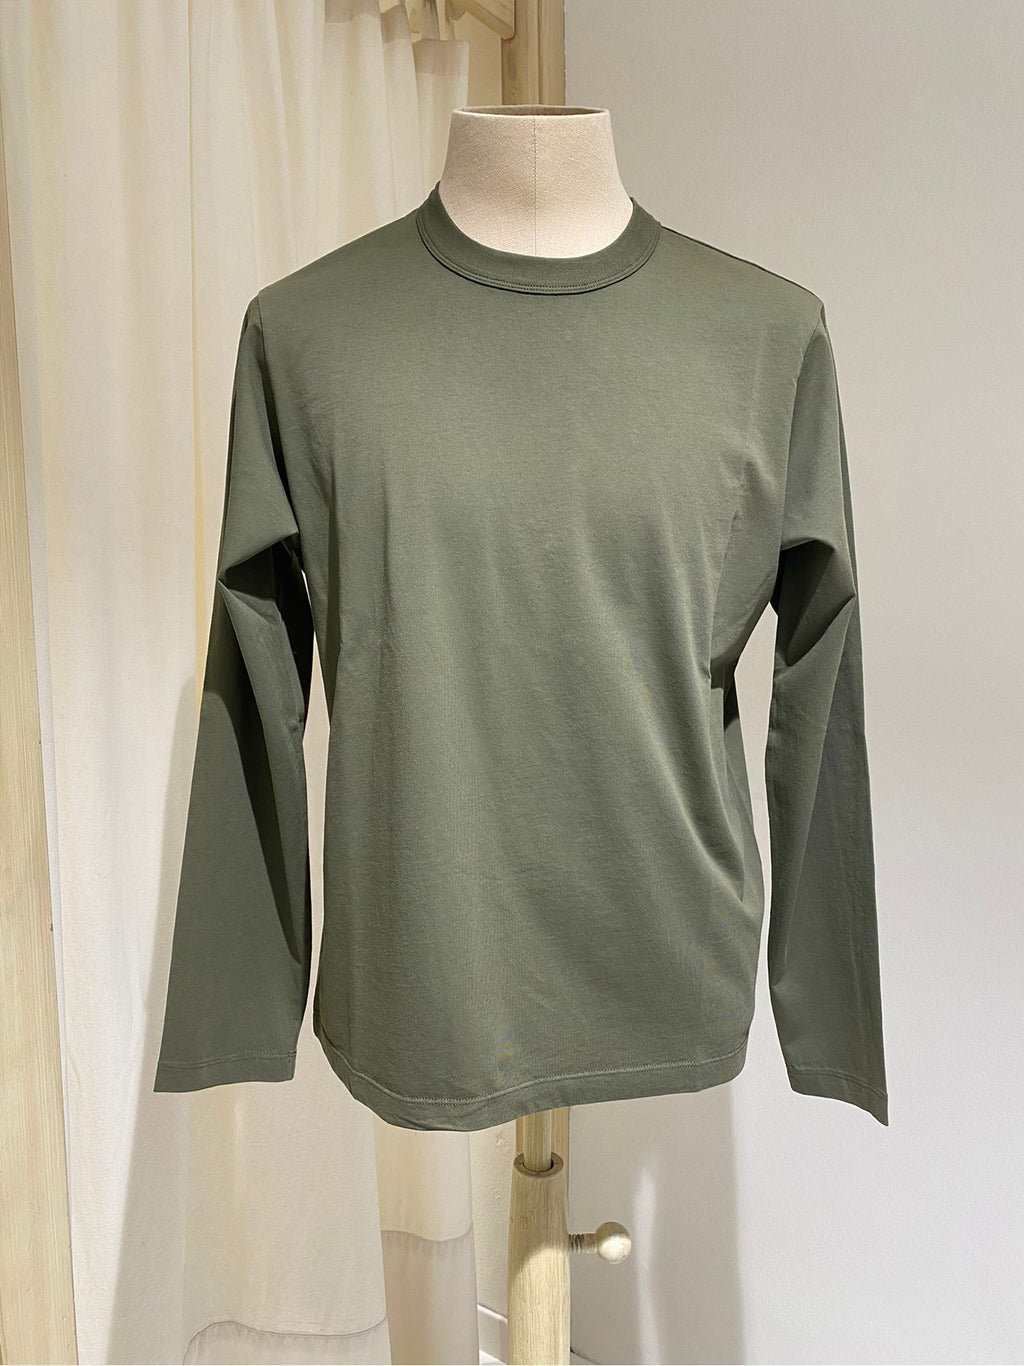 M T-shirt ML COVERT - Army Green